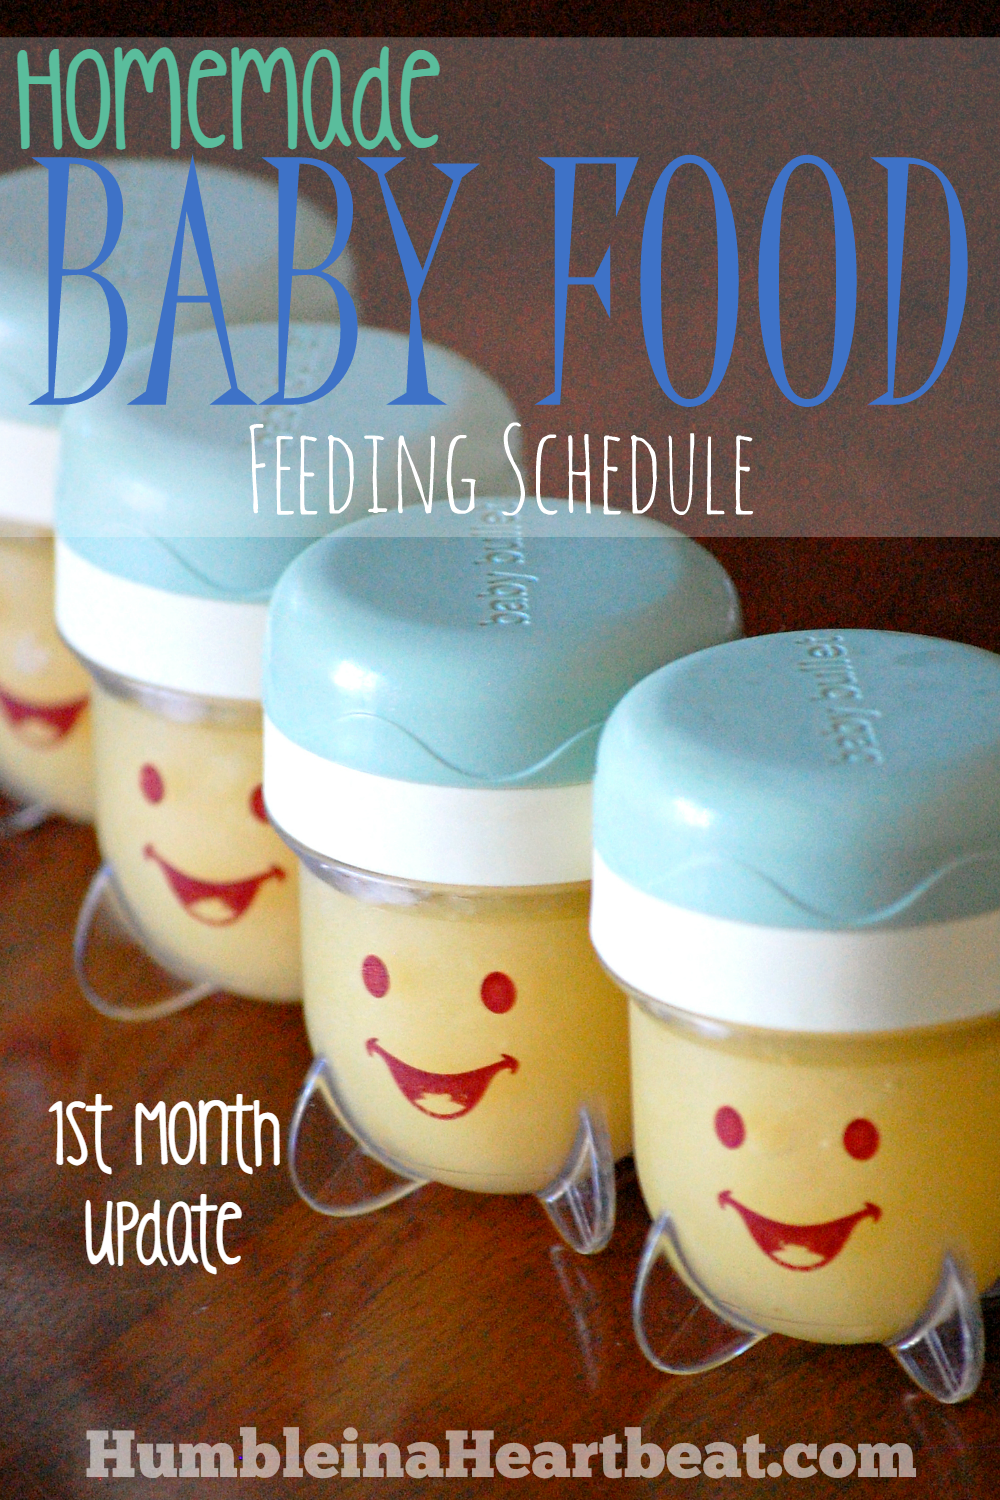 This is a very detailed list of all the foods one mama introduced to her baby. She even gives the total cost of feeding her baby!